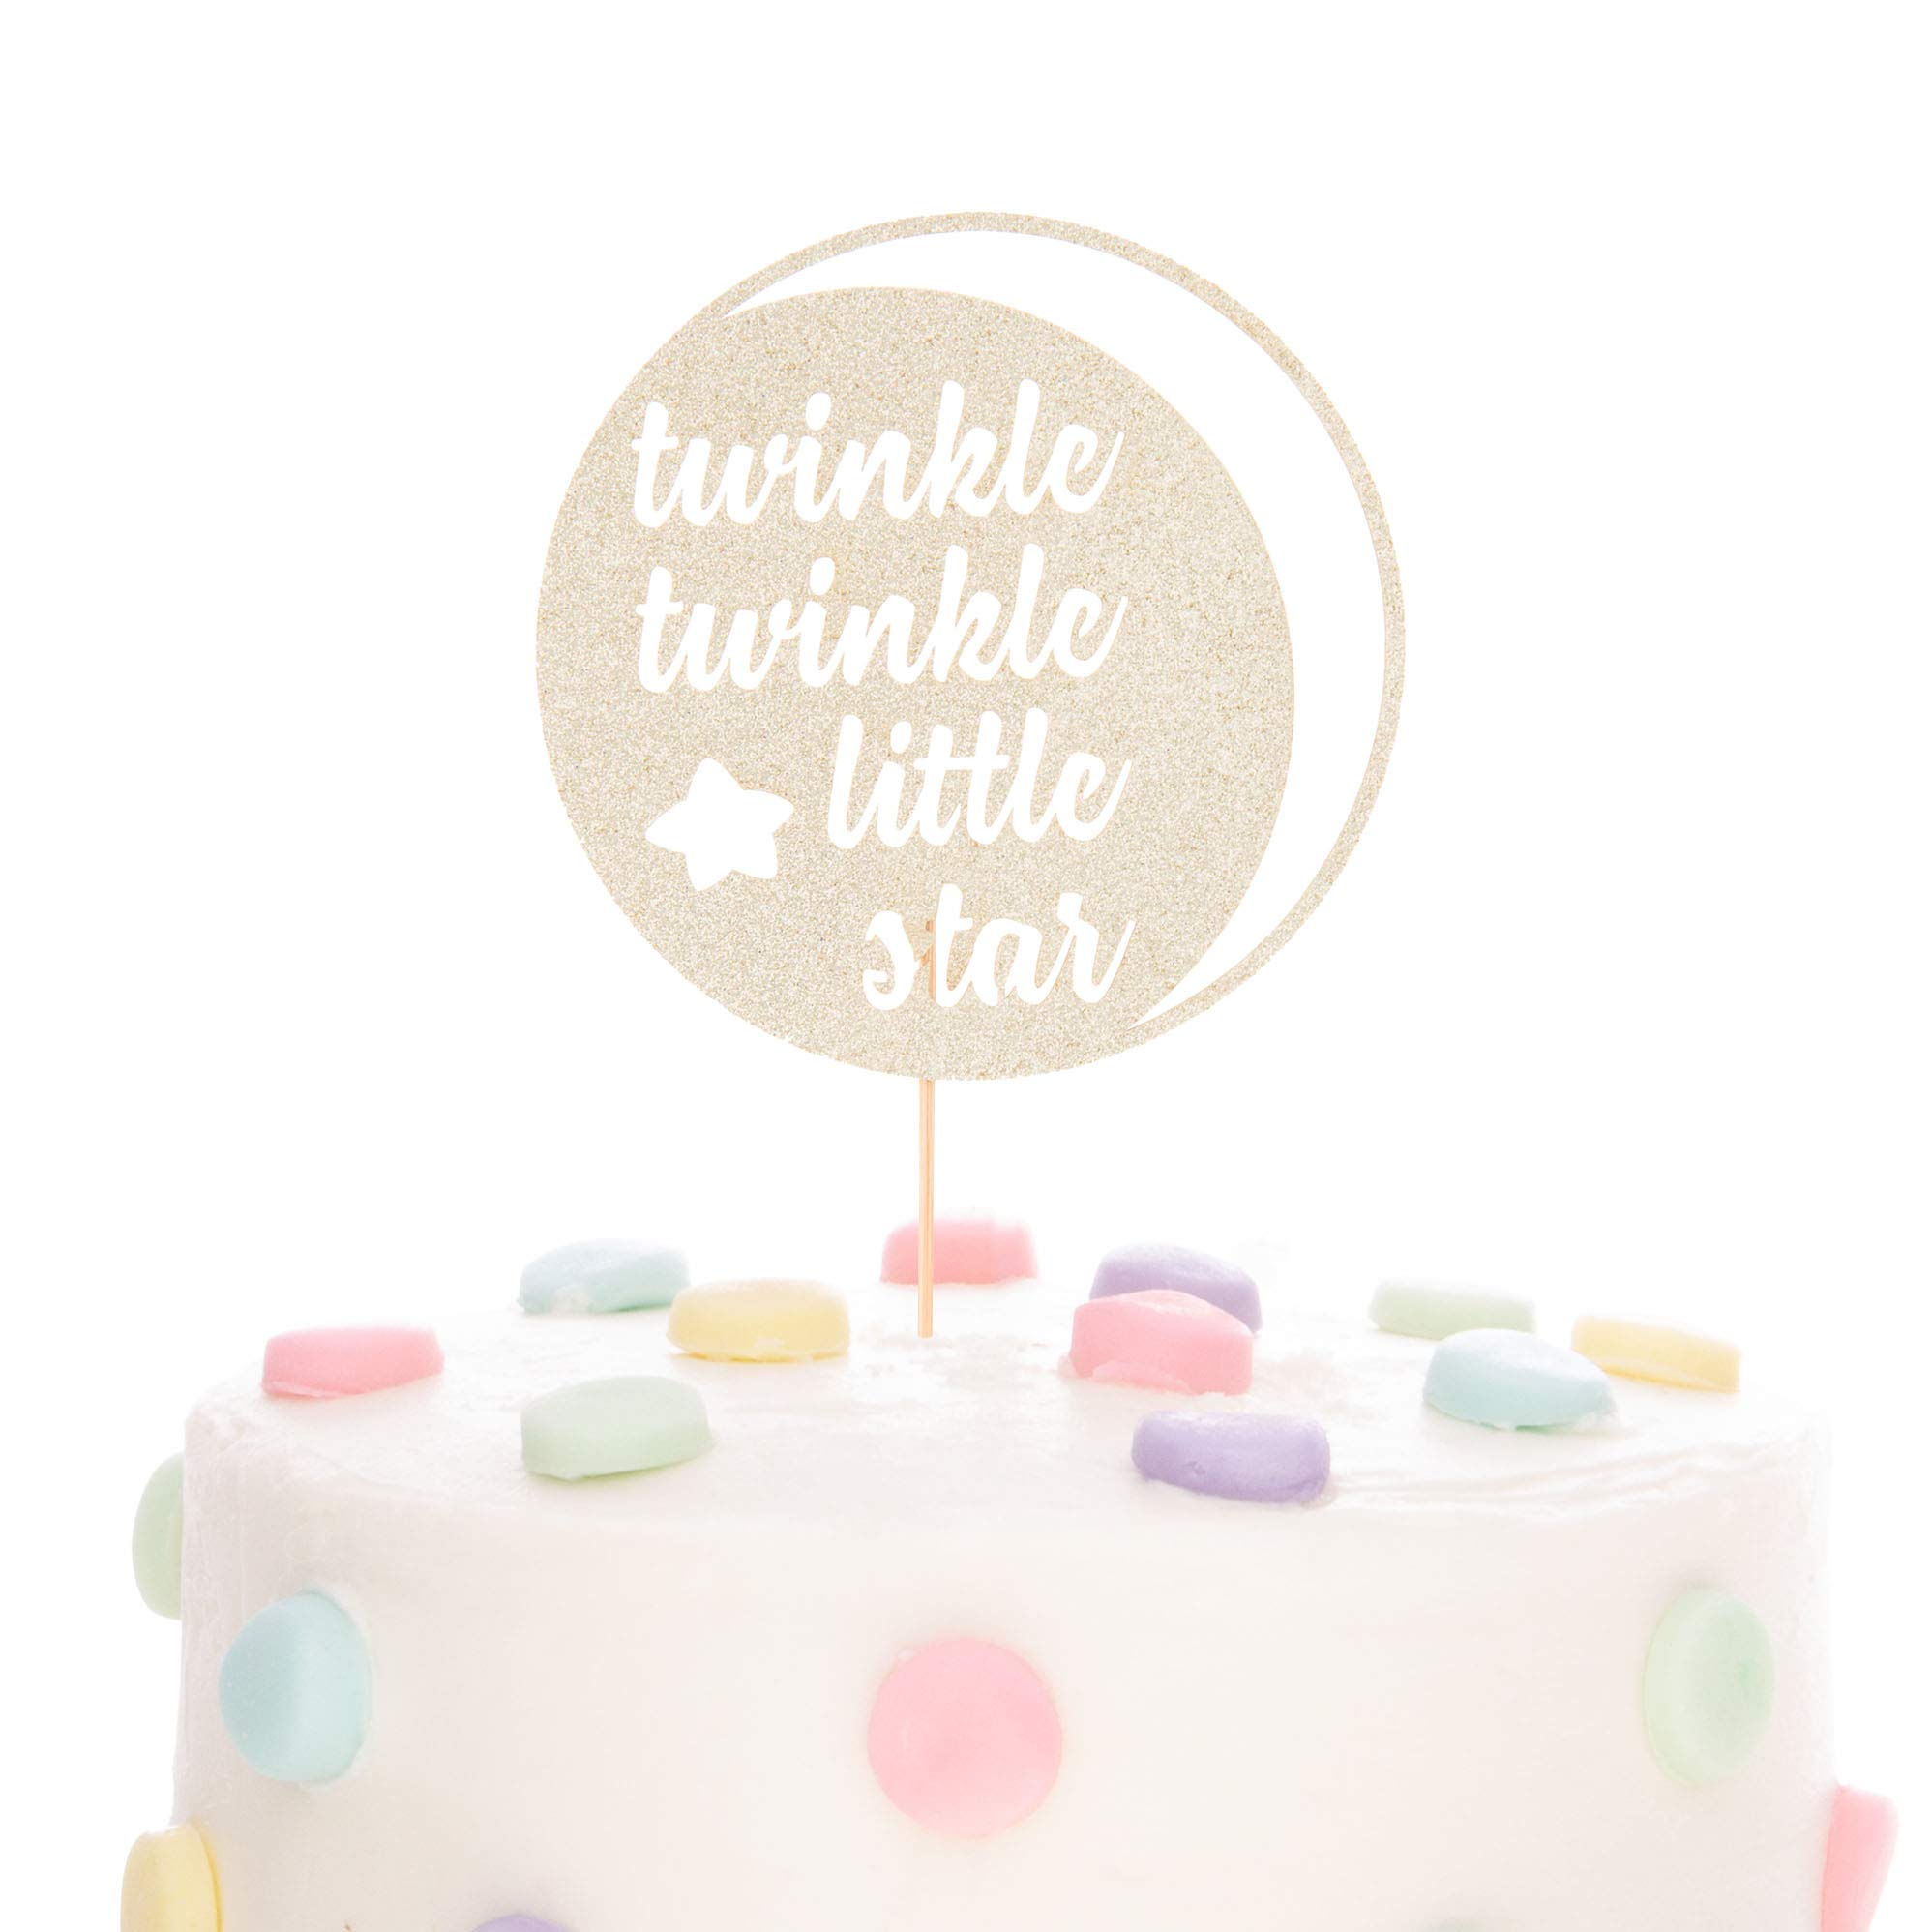 Ella Celebration Twinkle Twinkle Little Star Cake Topper Glitter Double Sided Cardstock Paperboard Toppers Baby Shower Gender Reveal Photo Props Paper Decor for 1st Birthday (Twinkle Moon Light Gold)